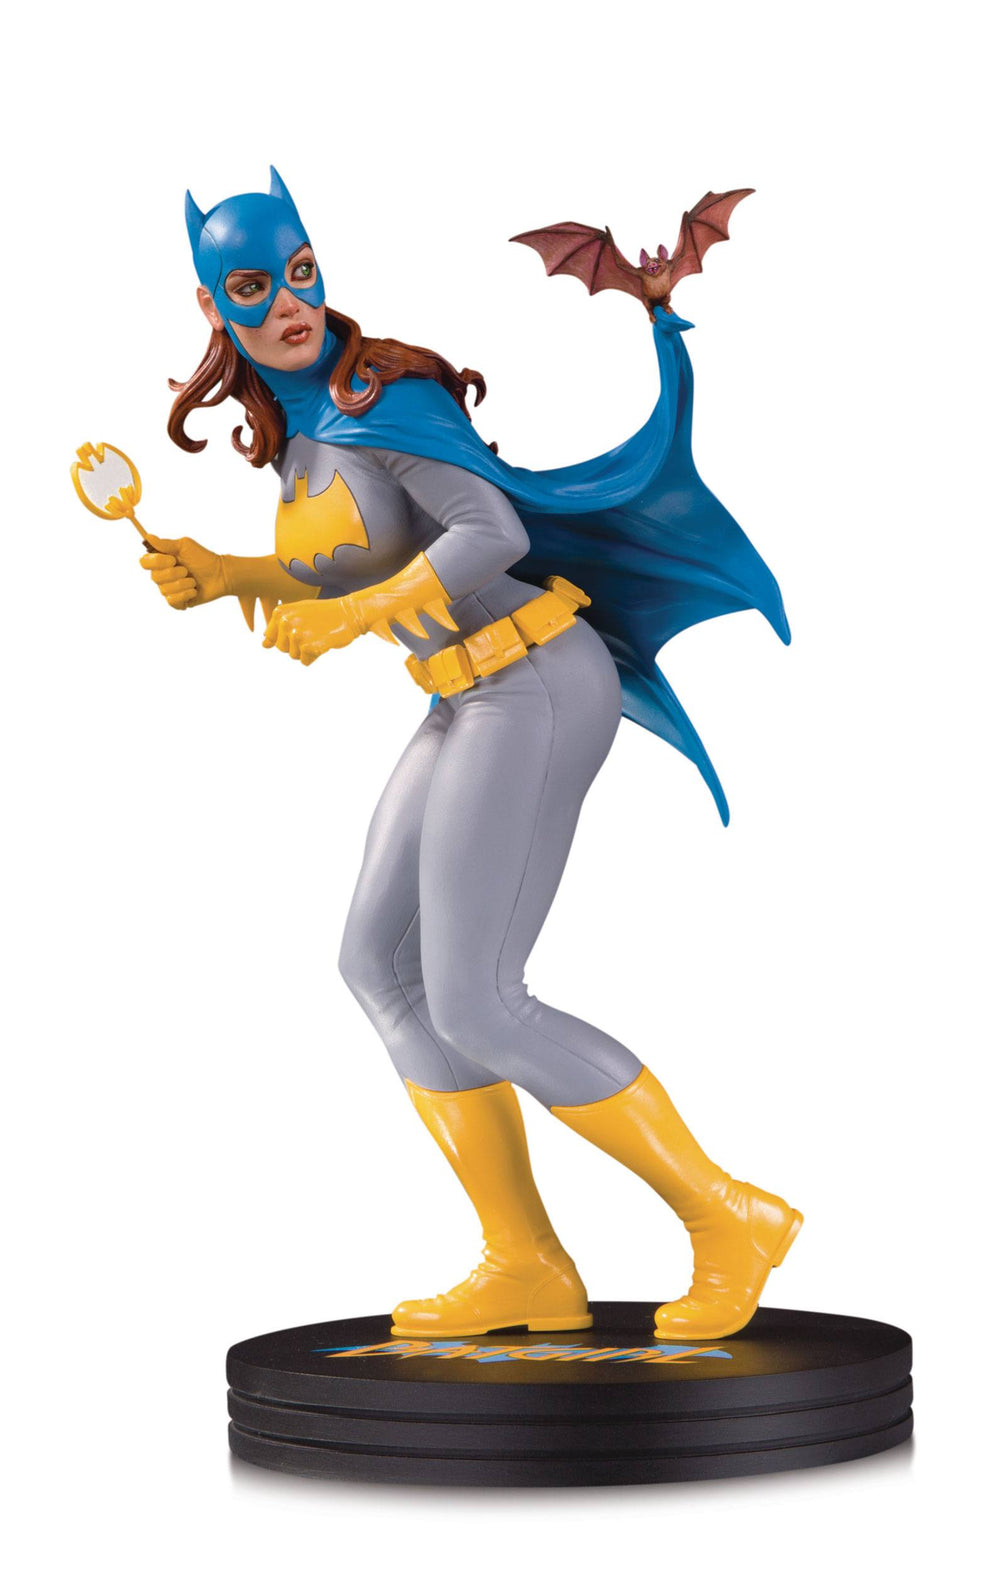 DC Collectibles DC Comics Cover Girls Batgirl by Frank Cho Statue